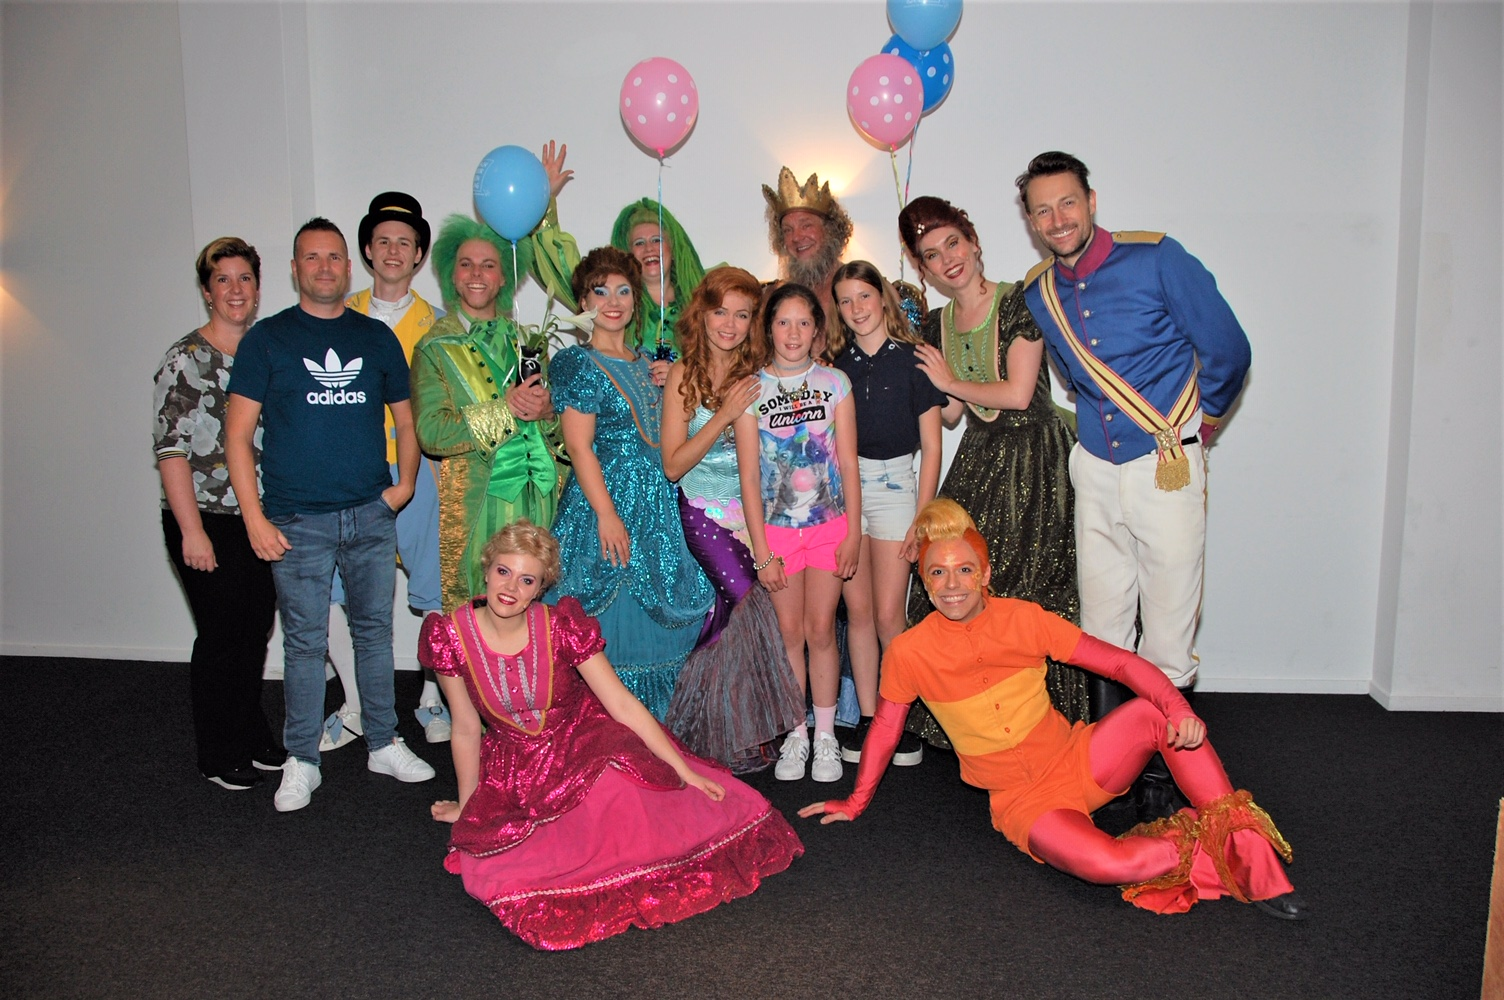 Desi Everts met cast LR